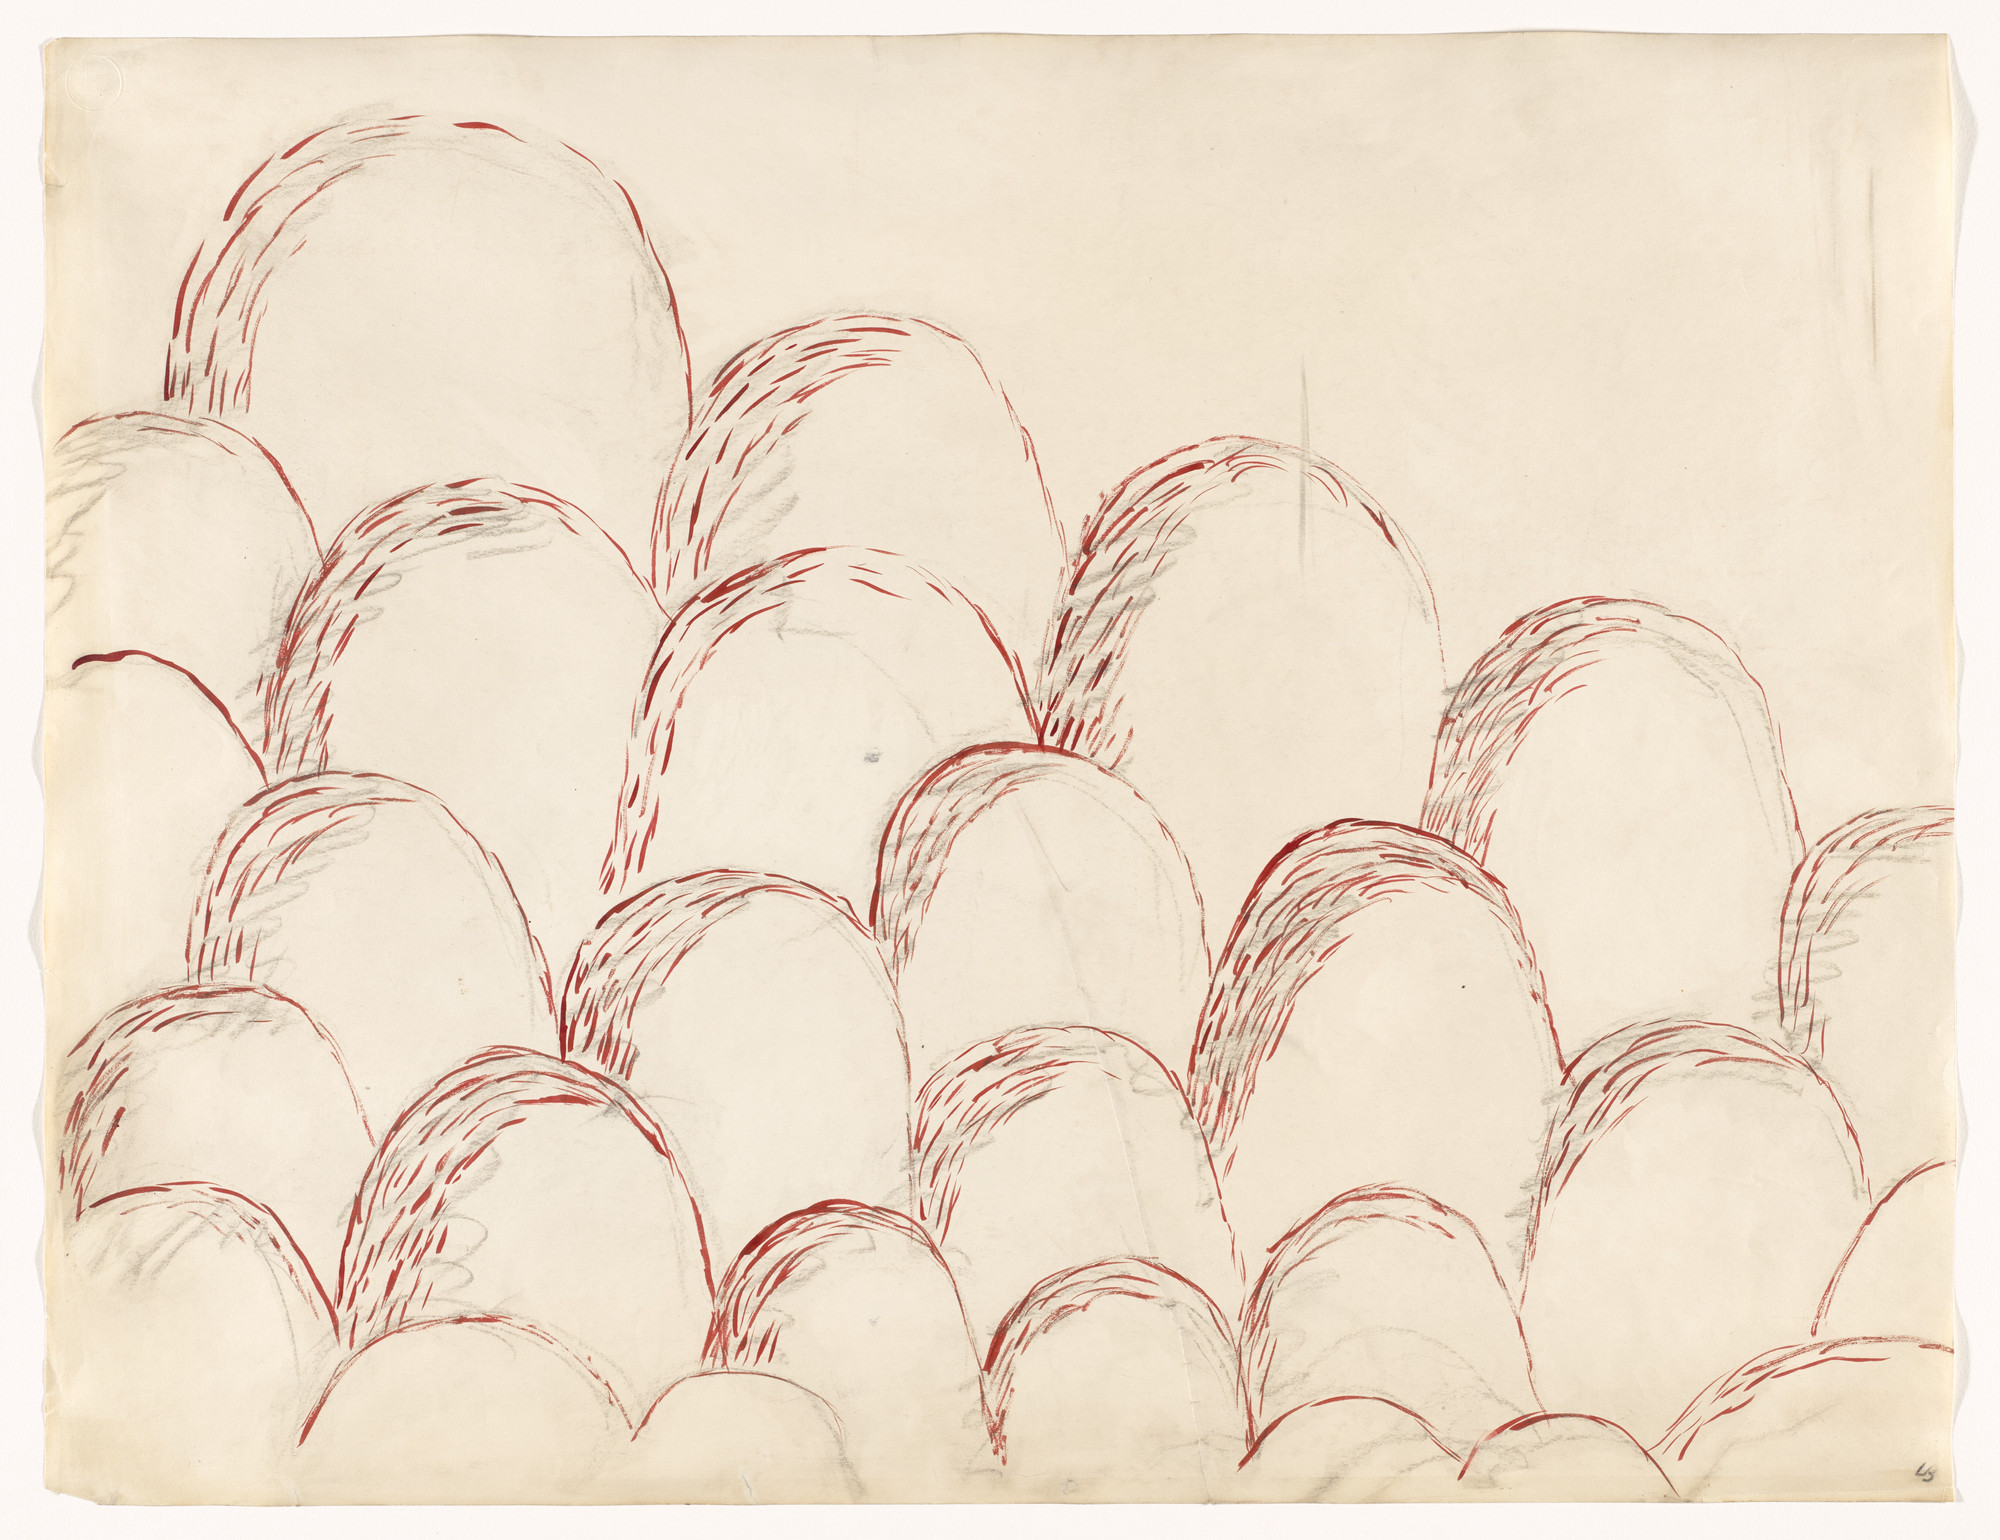 Louise Bourgeois. Cumuls. 1970